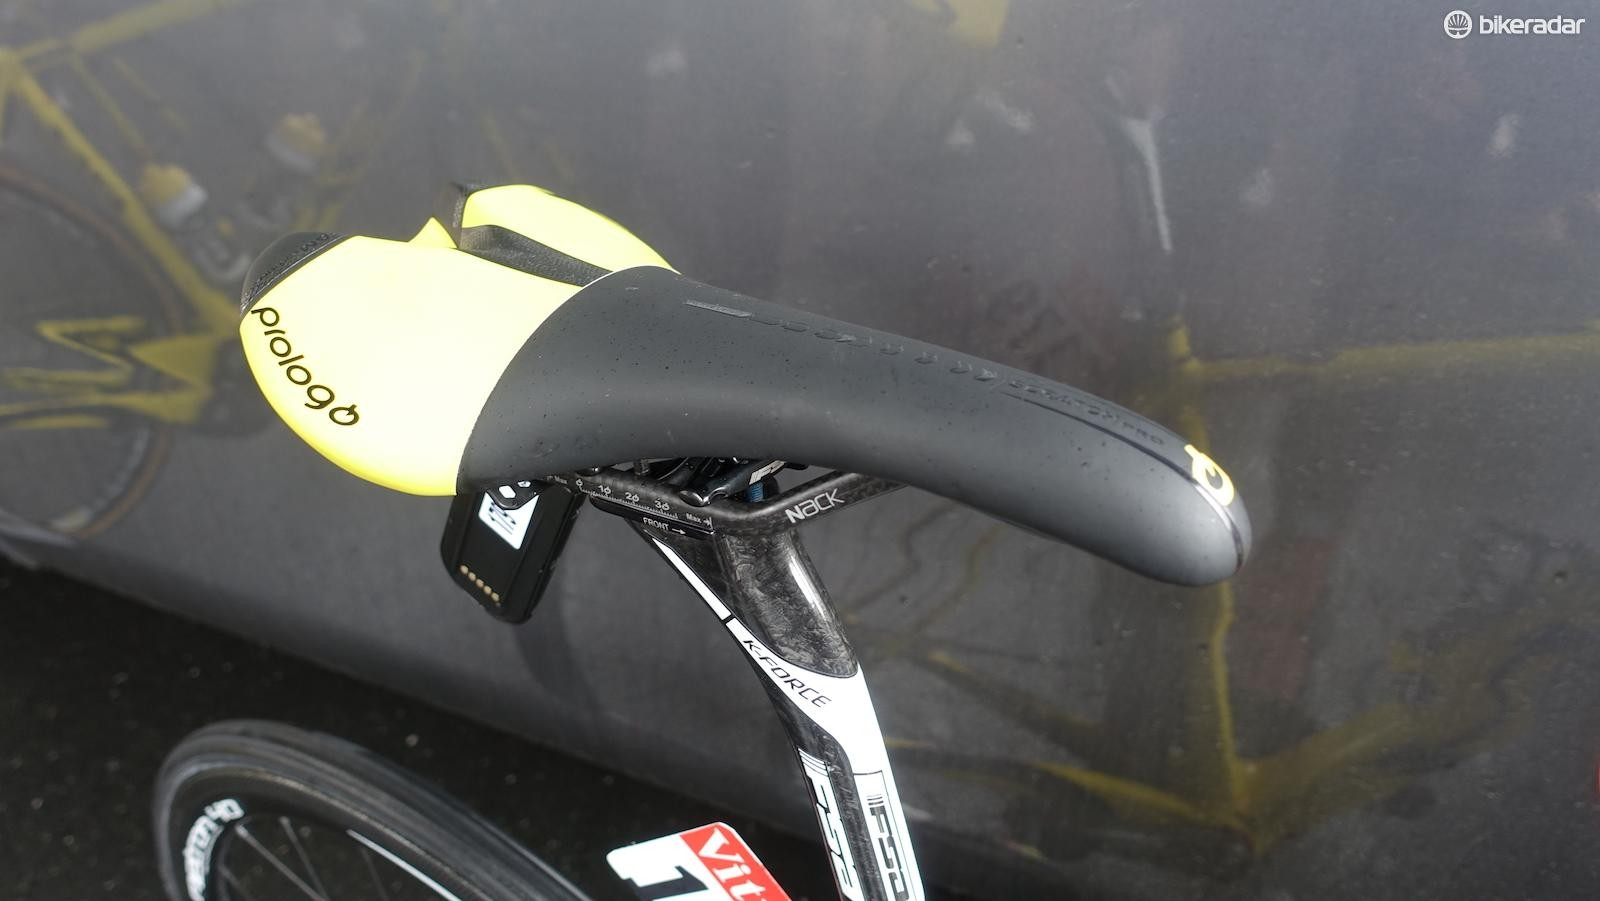 Voeckler likes a bit more padding in his Prologo Scratch Pro saddle. His seat height is 73.8 centimeters